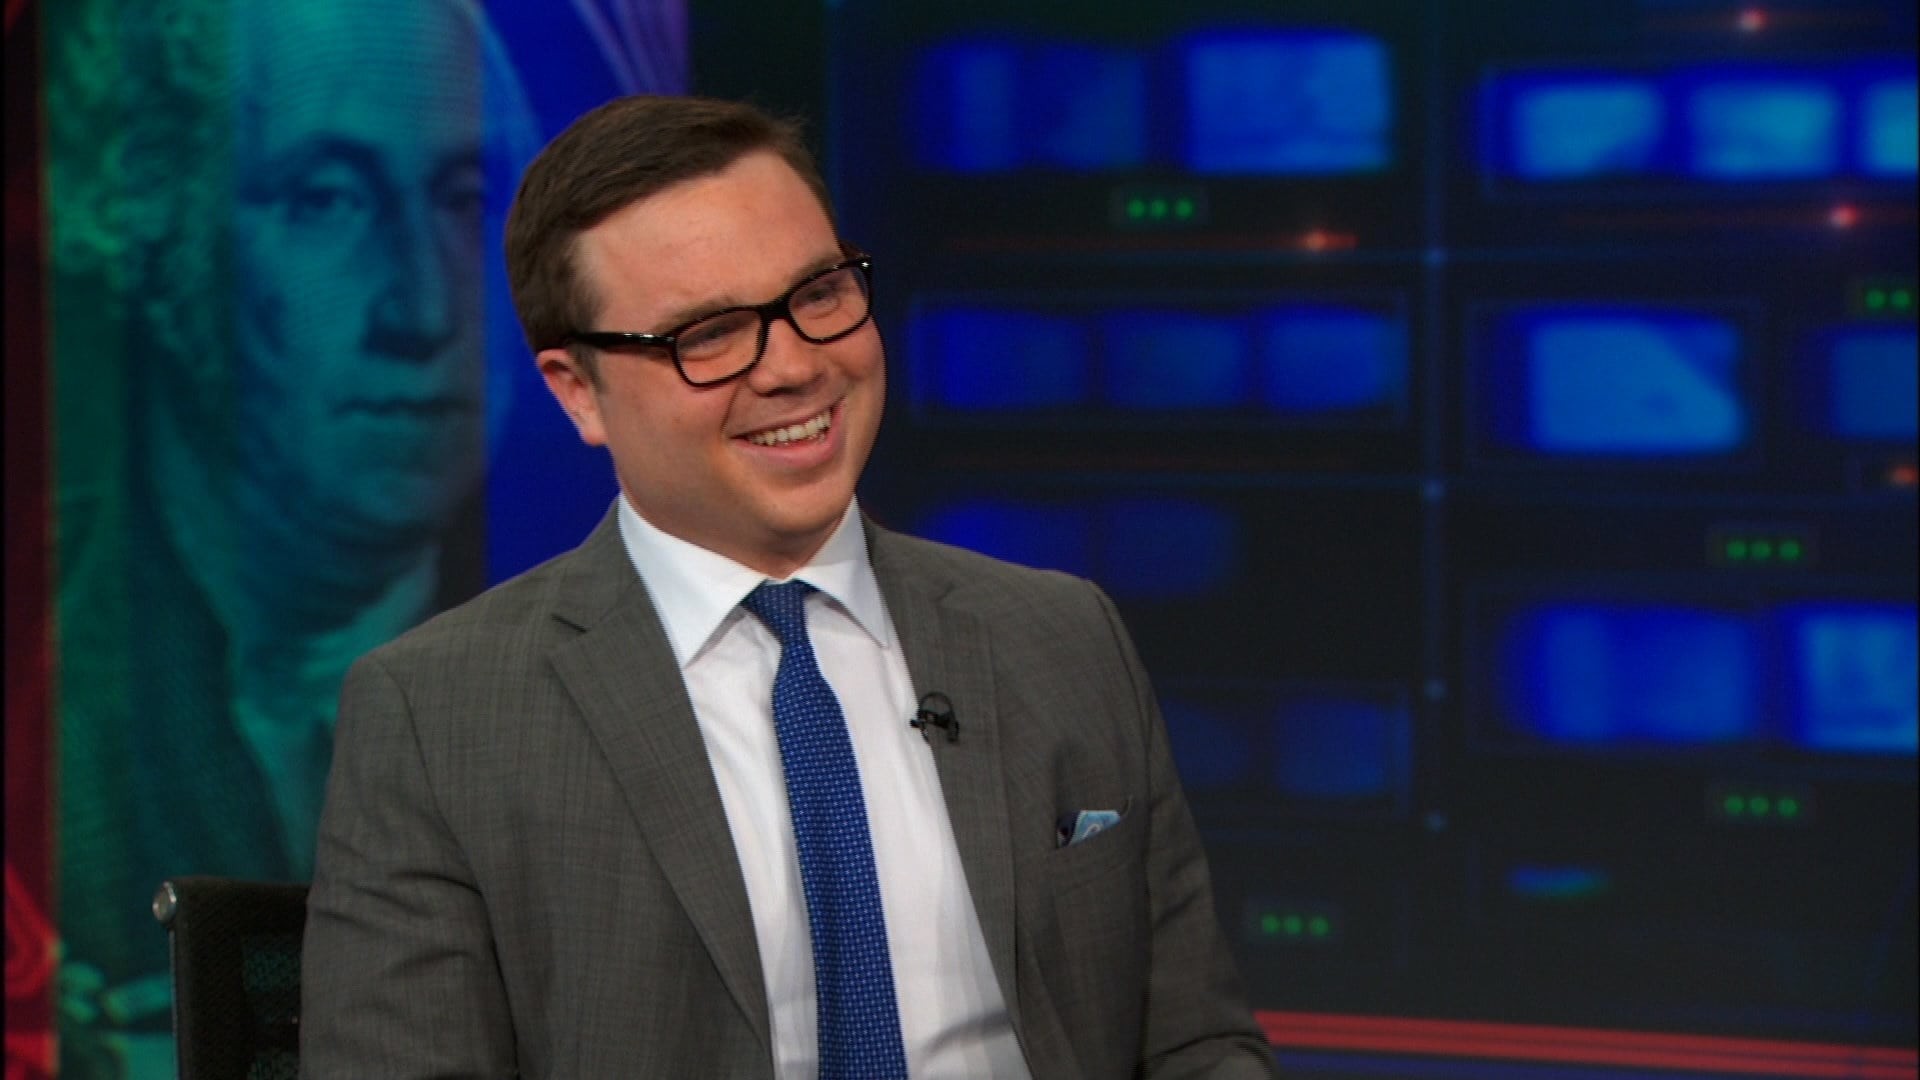 The Daily Show with Trevor Noah - Season 19 Episode 70 : Kevin Roose